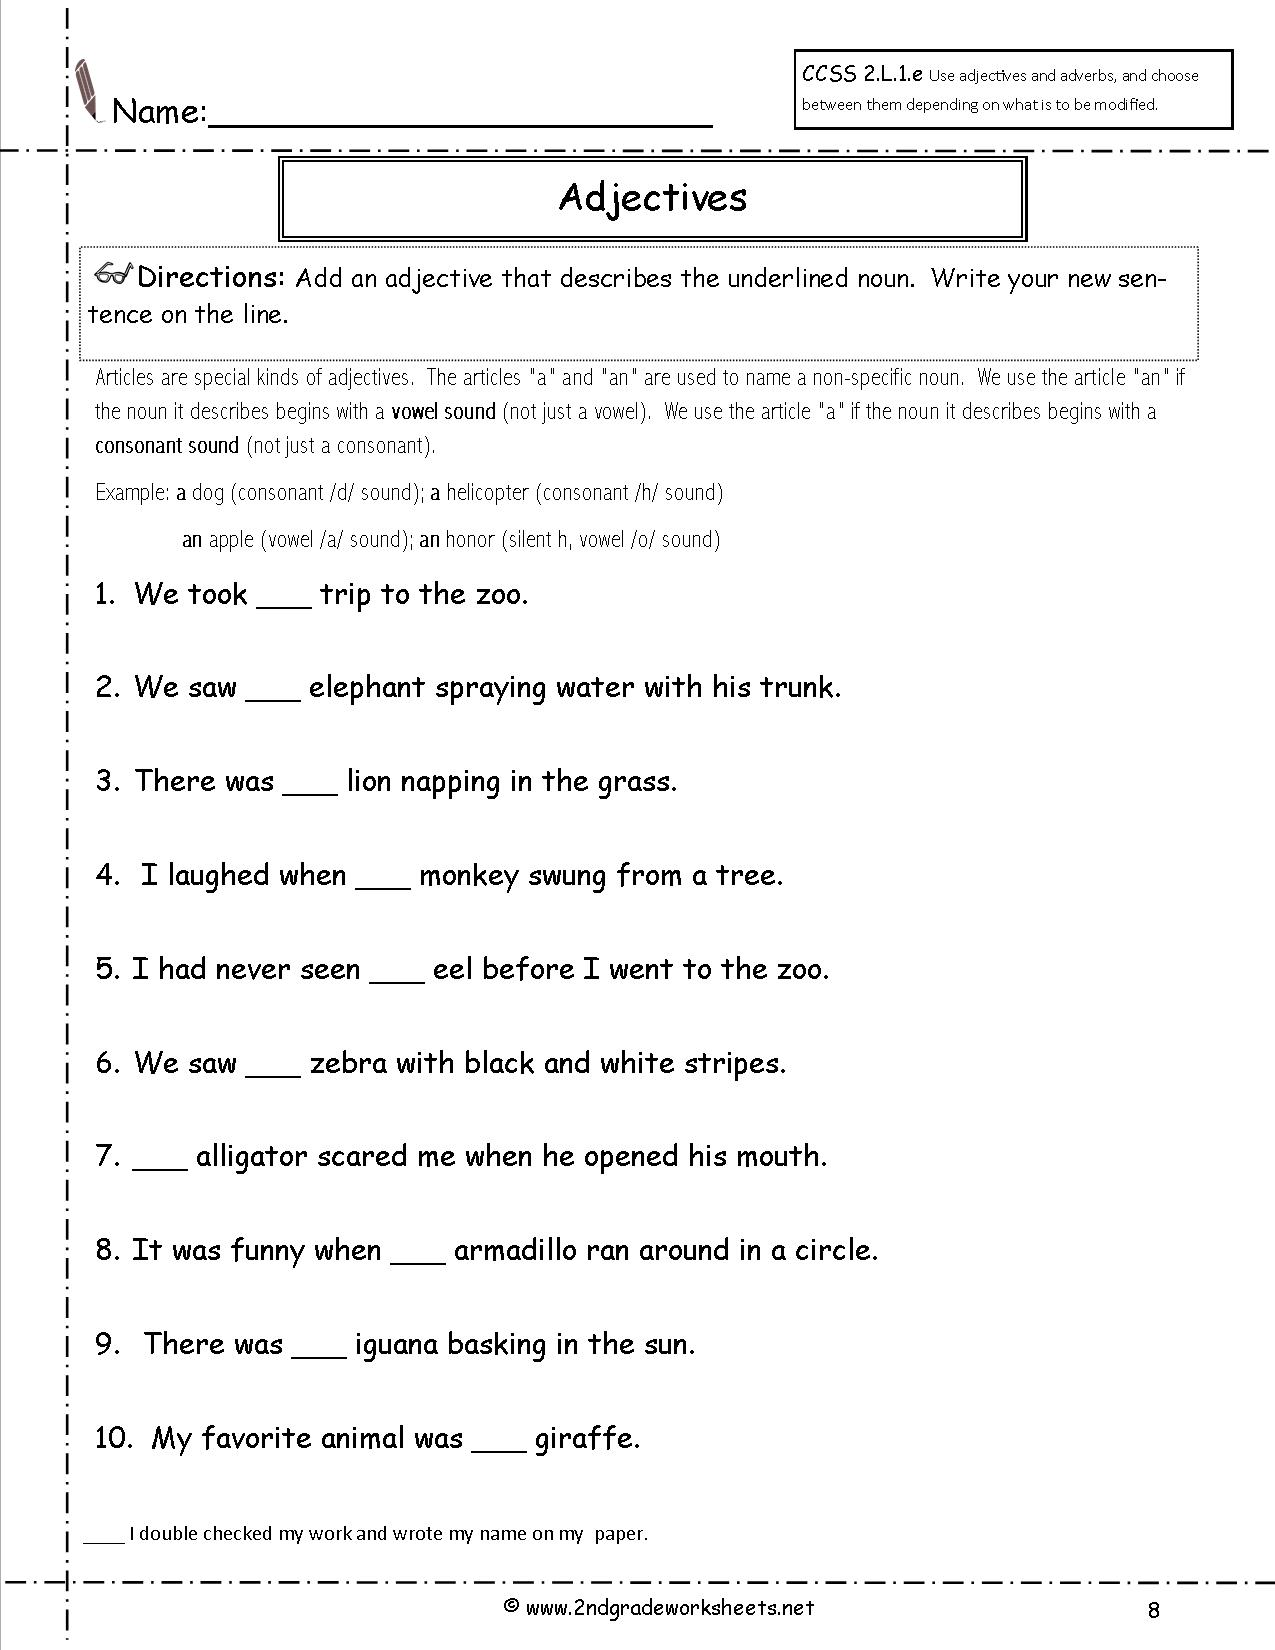 Worksheets 8th Grade English Grammar Worksheets free printable english grammar worksheets grade 7 for adjectives a or an worksheet